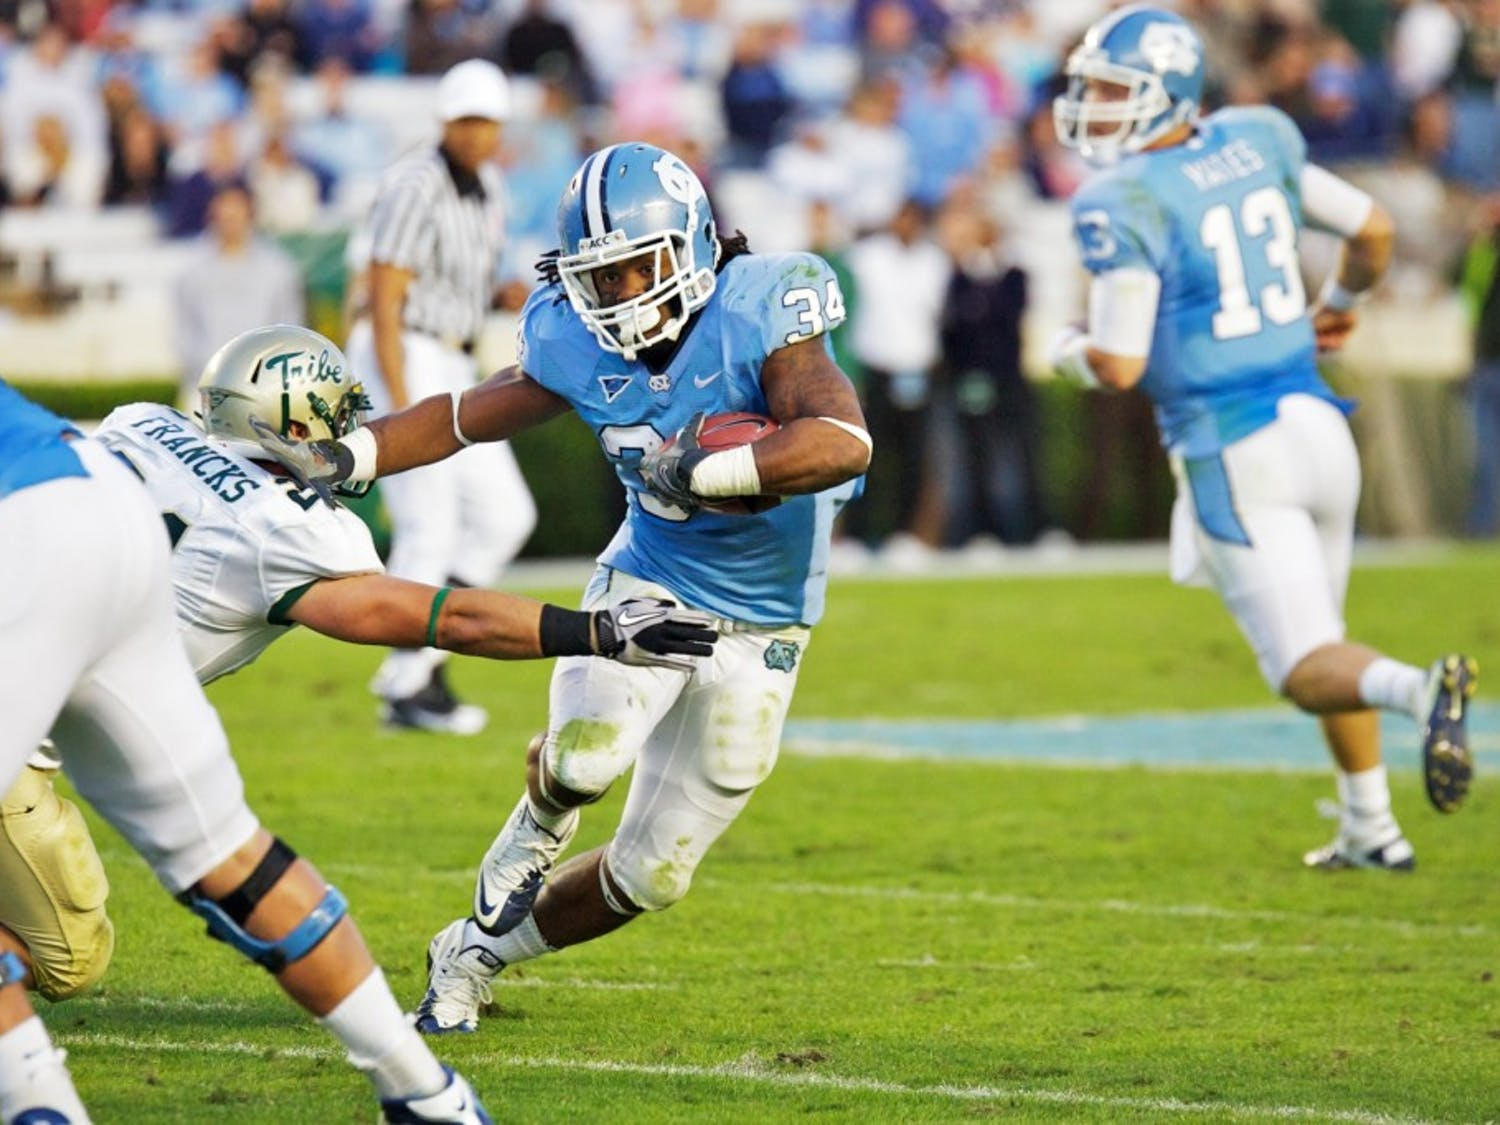 Johnny White led the Tar Heels comeback in the 4th quarter against William and Mary.